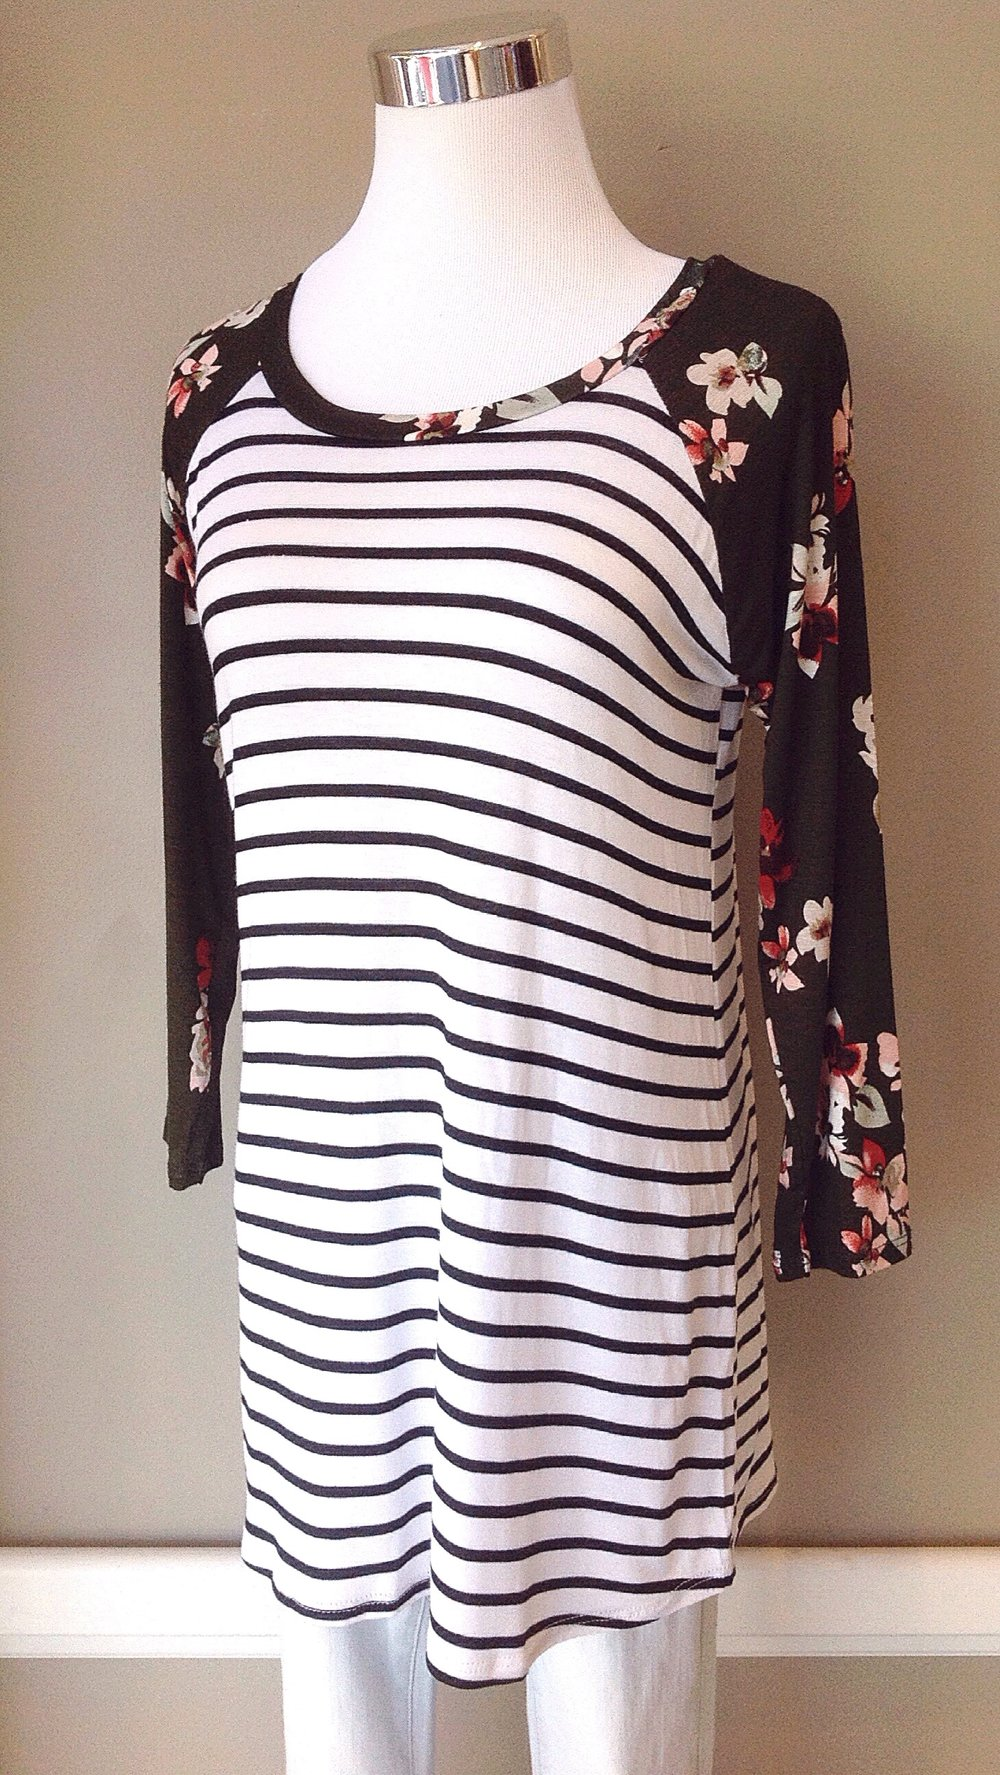 Stripe knit baseball top with contrast floral sleeves, $28